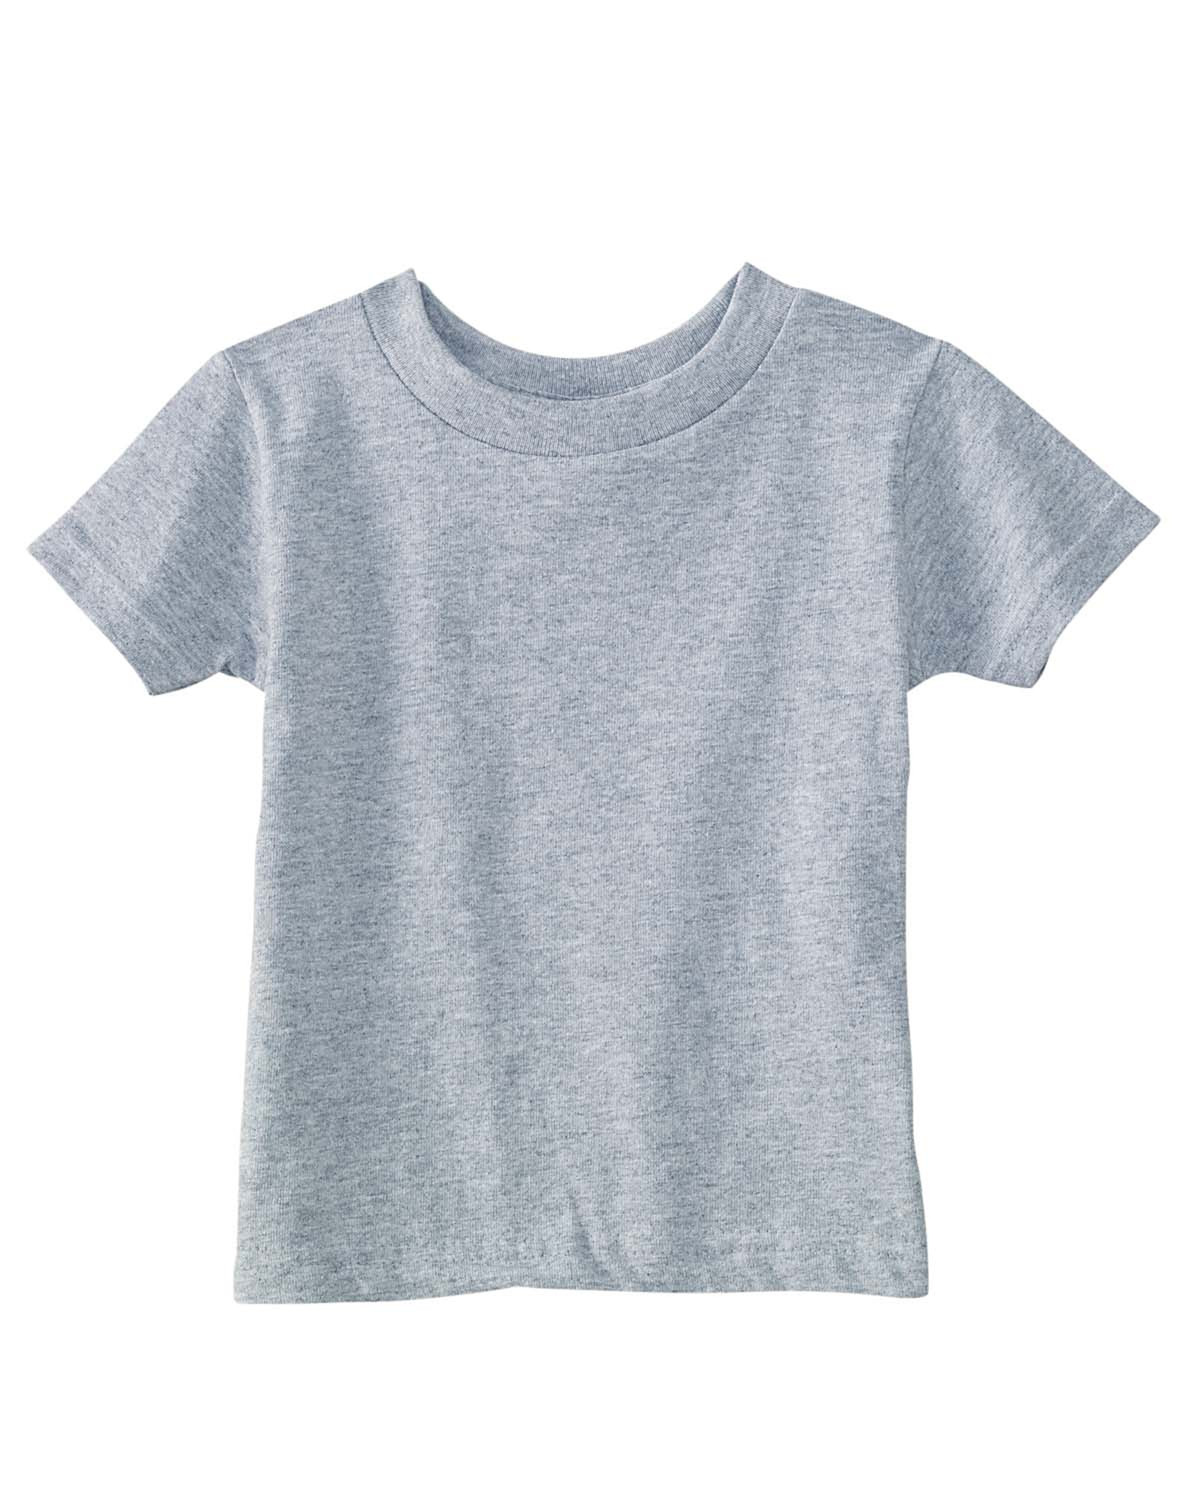 Infant Cotton Jersey T-Shirt